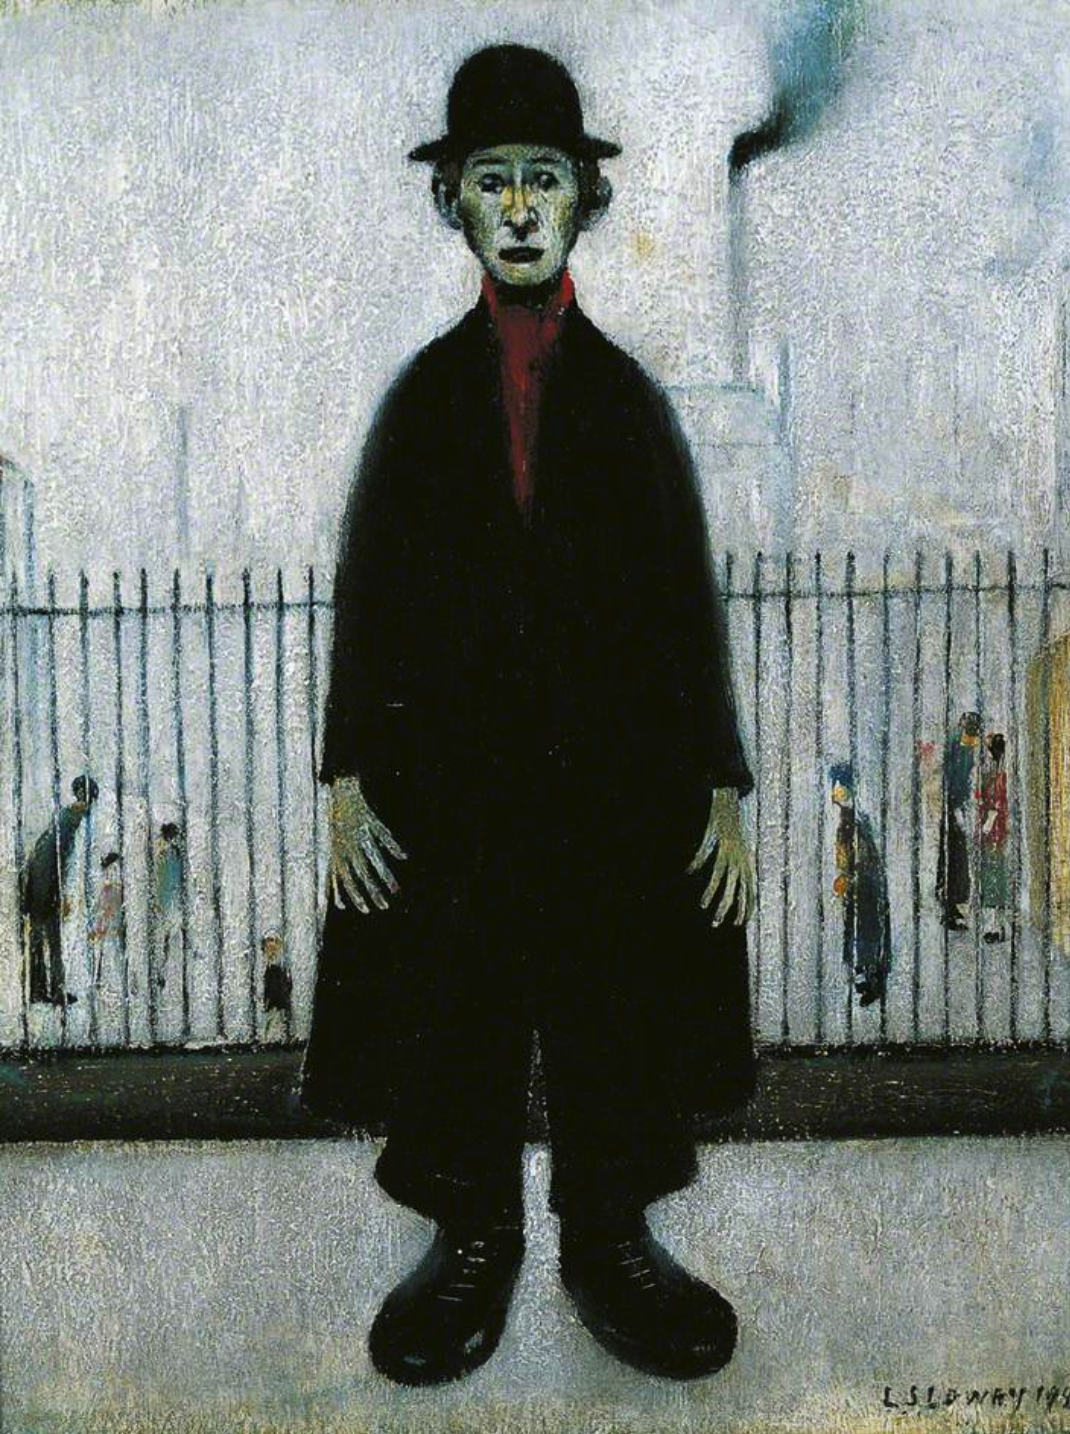 A Lancashire Cotton Worker (1944) by Laurence Stephen Lowry (1887 - 1976), English artist.